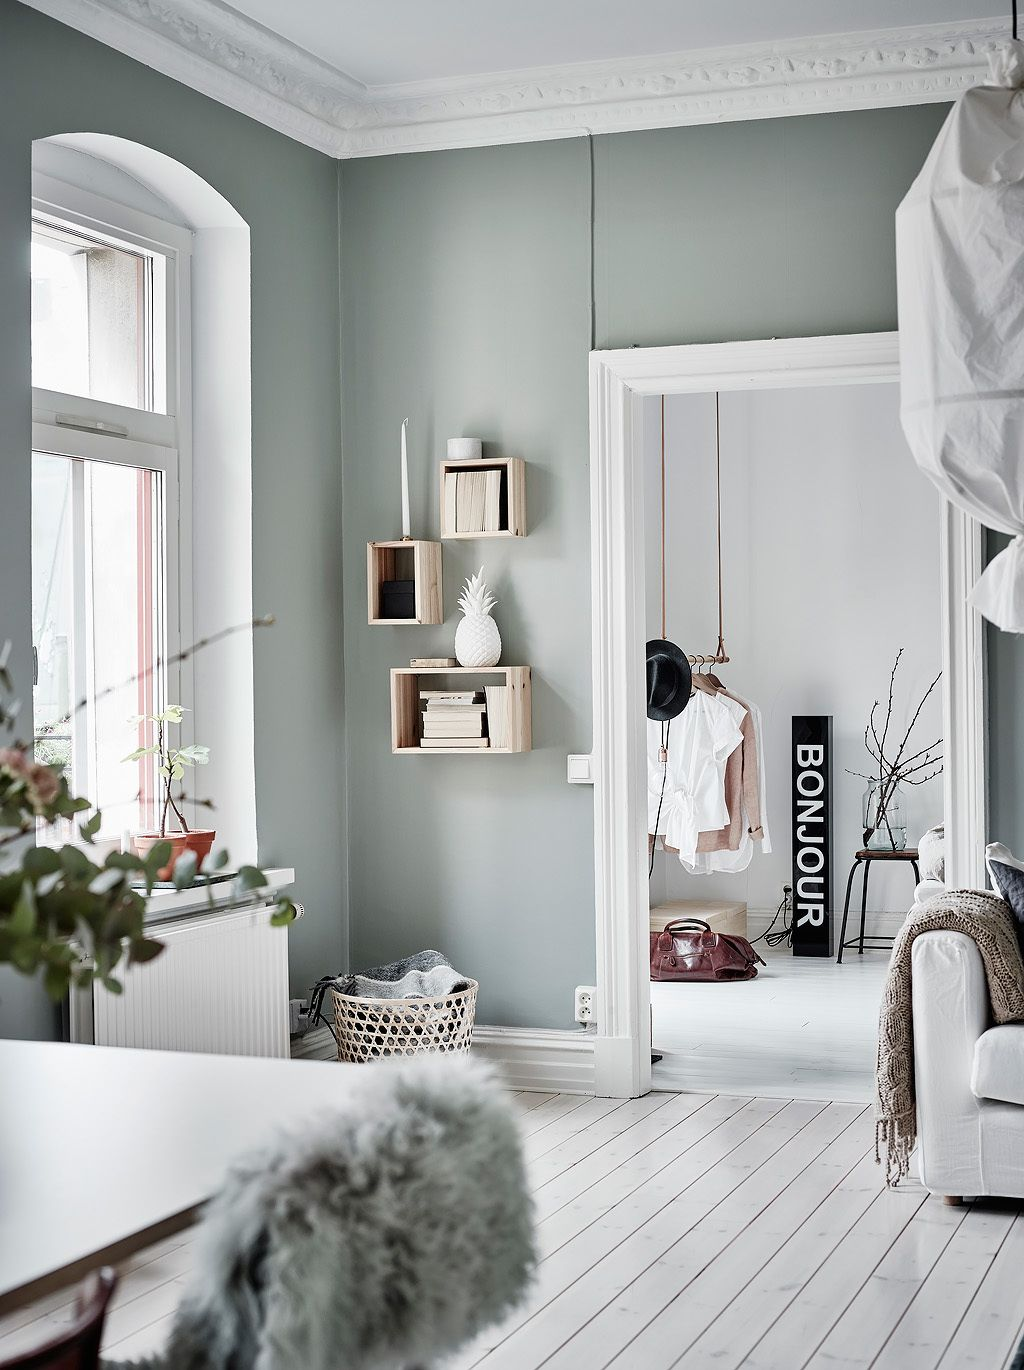 Living Room Paint Ideas Grey green grey home with character - via coco lapine design | living